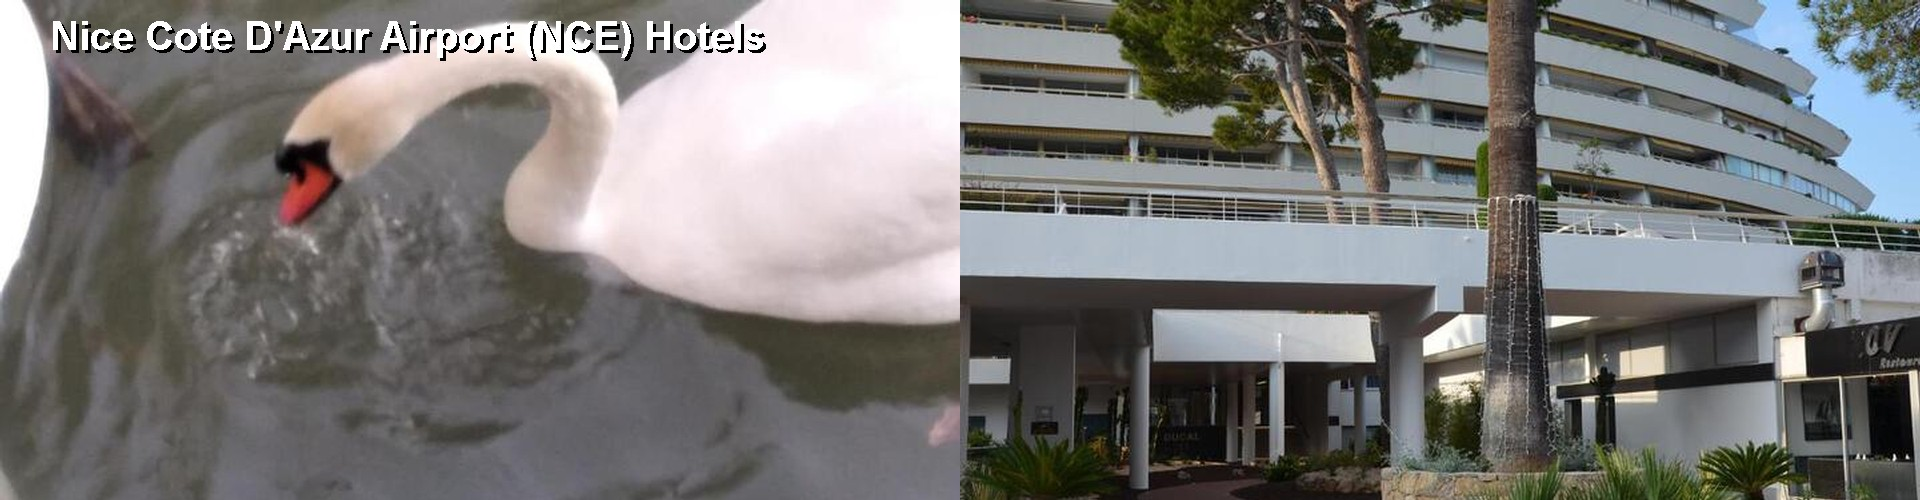 5 Best Hotels near Nice Cote D'Azur Airport (NCE)